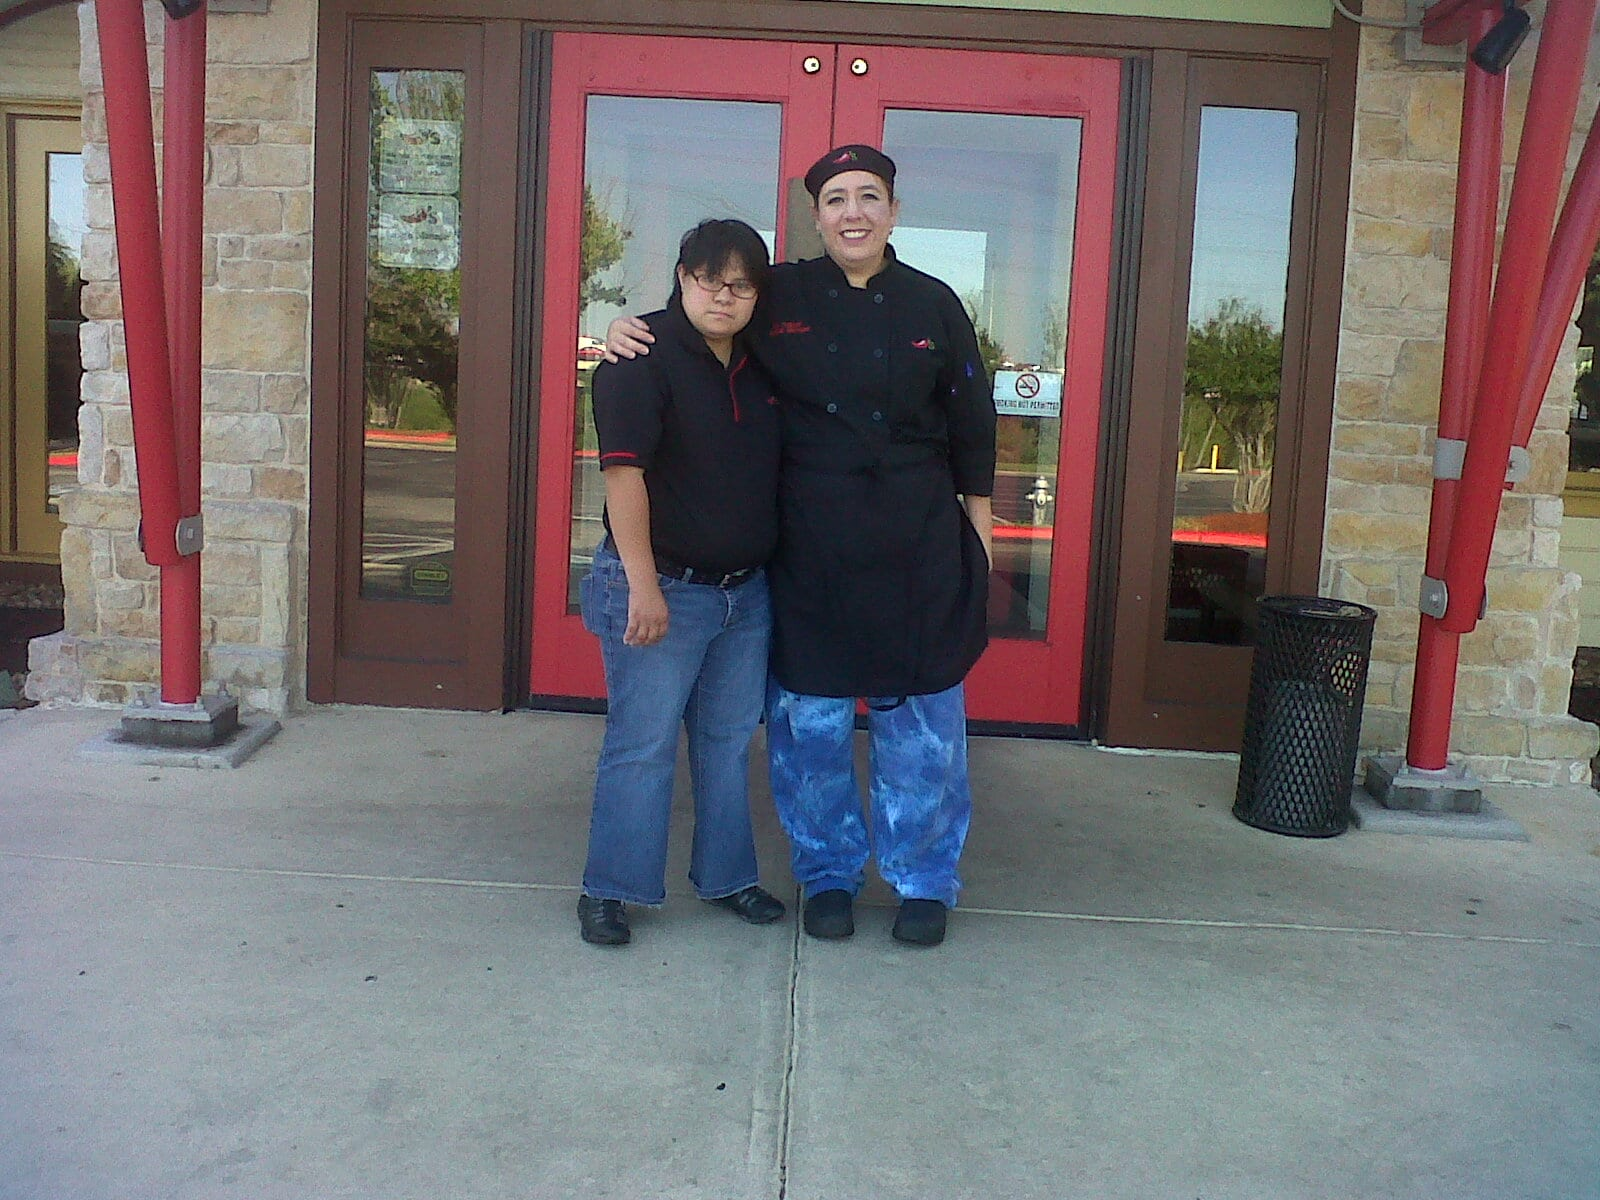 """Monica Pollock, the General Manager at Chilli's said, """"We pride ourselves on making people feel special."""""""